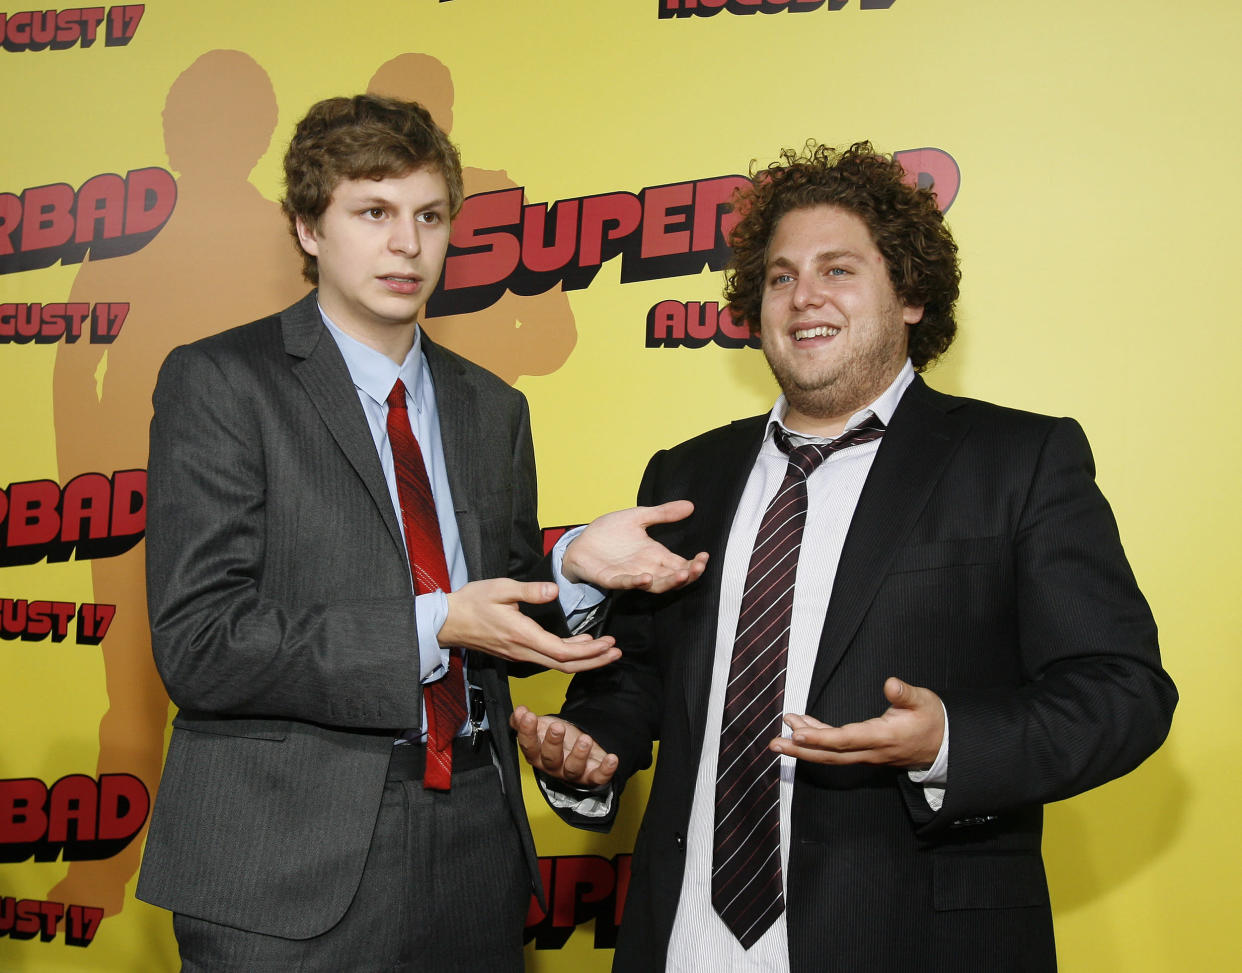 Cast members Michael Cera (L) and Jonah Hill pose at the premiere of